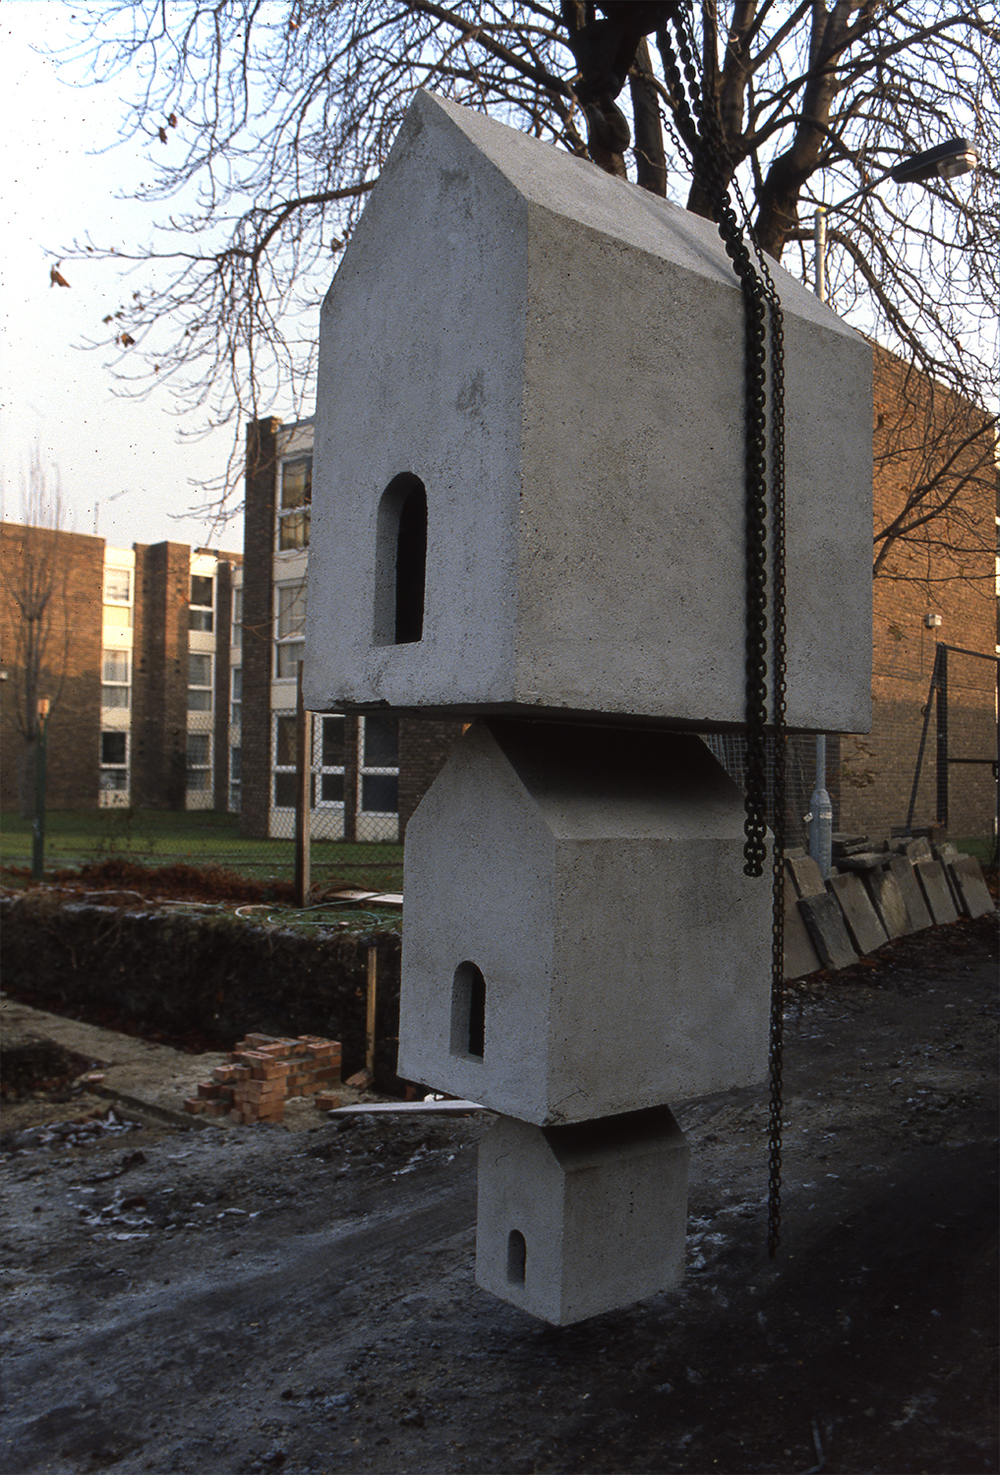 1989 'Untitled' wood and concrete 412 x 165 x 153cm image3 1500px w highest qual prog.jpg